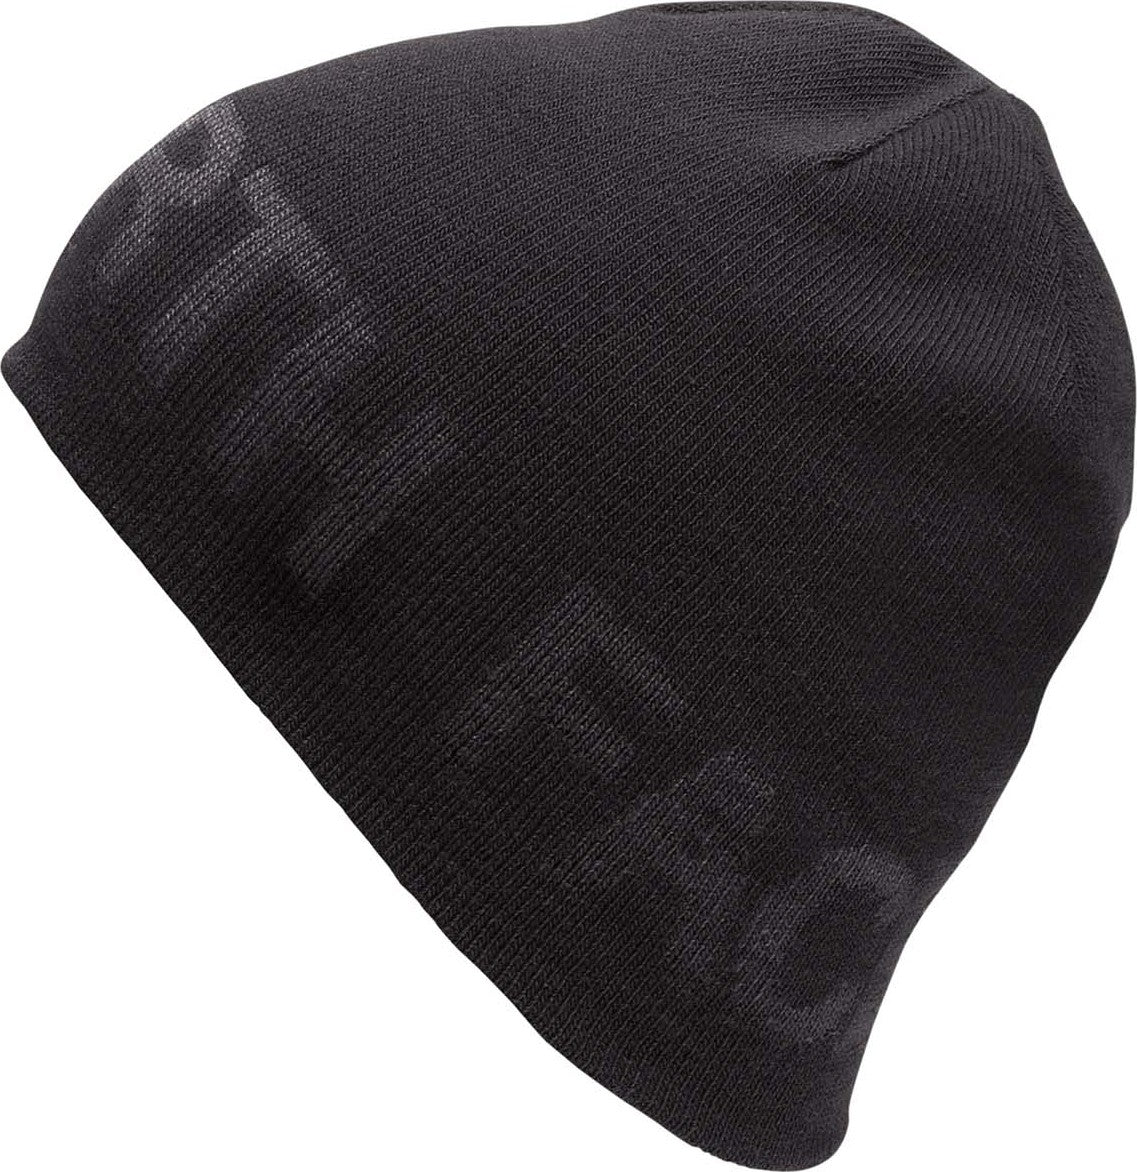 fde16a4cf244e The North Face Reversible Tnf Banner Beanie